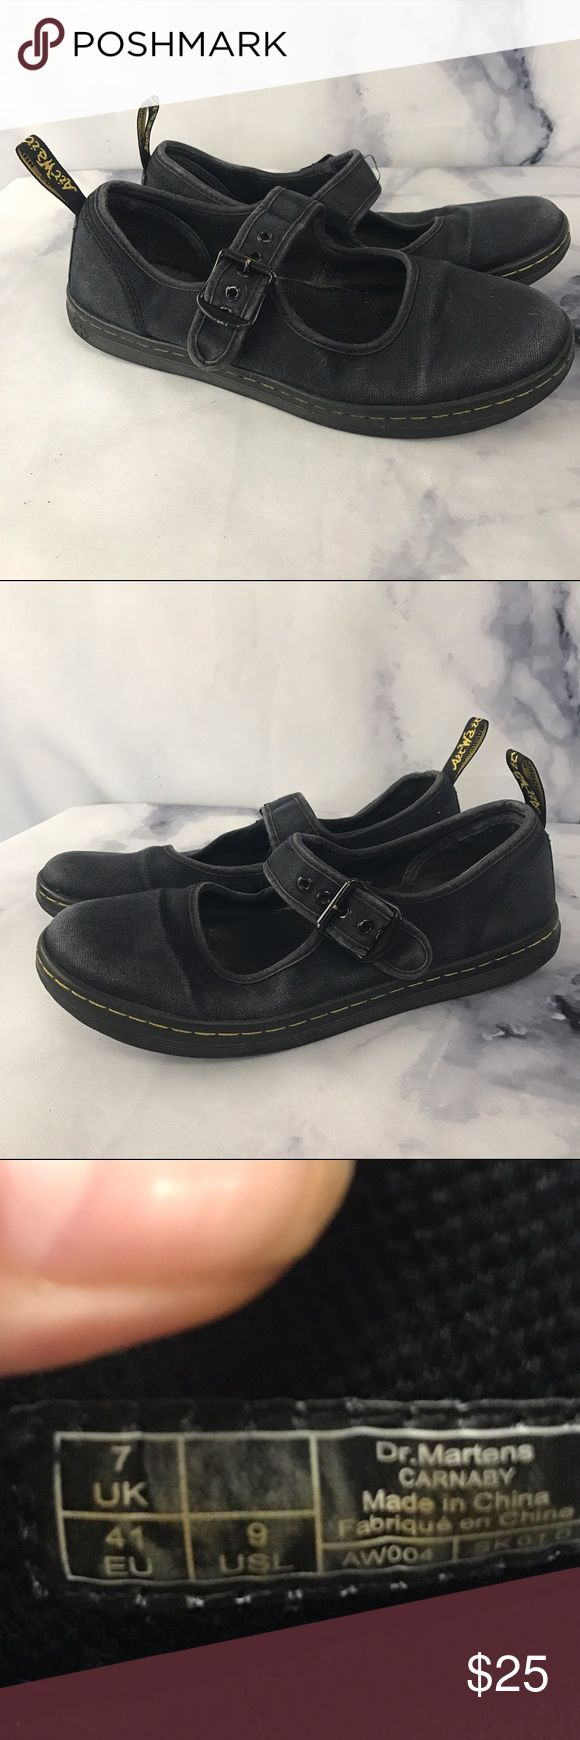 Dr. Martens Carnaby Canvas Maryjane 9 Used condition. Perfect grunge piece! True 9s. 🖤THANK YOU for supporting the dream of business ownership of 2 BFFs! 🖤DON'T PASS THIS UP! Make us an offer! 🖤We ship daily M-Sat, so youll get it on time! 🖤no price discussion in comments please🖤 use offer button 🖤reasonable offers accepted 🖤low offers countered🖤offers below 50% of asking price are auto declined🖤 Dr. Martens Shoes Flats & Loafers